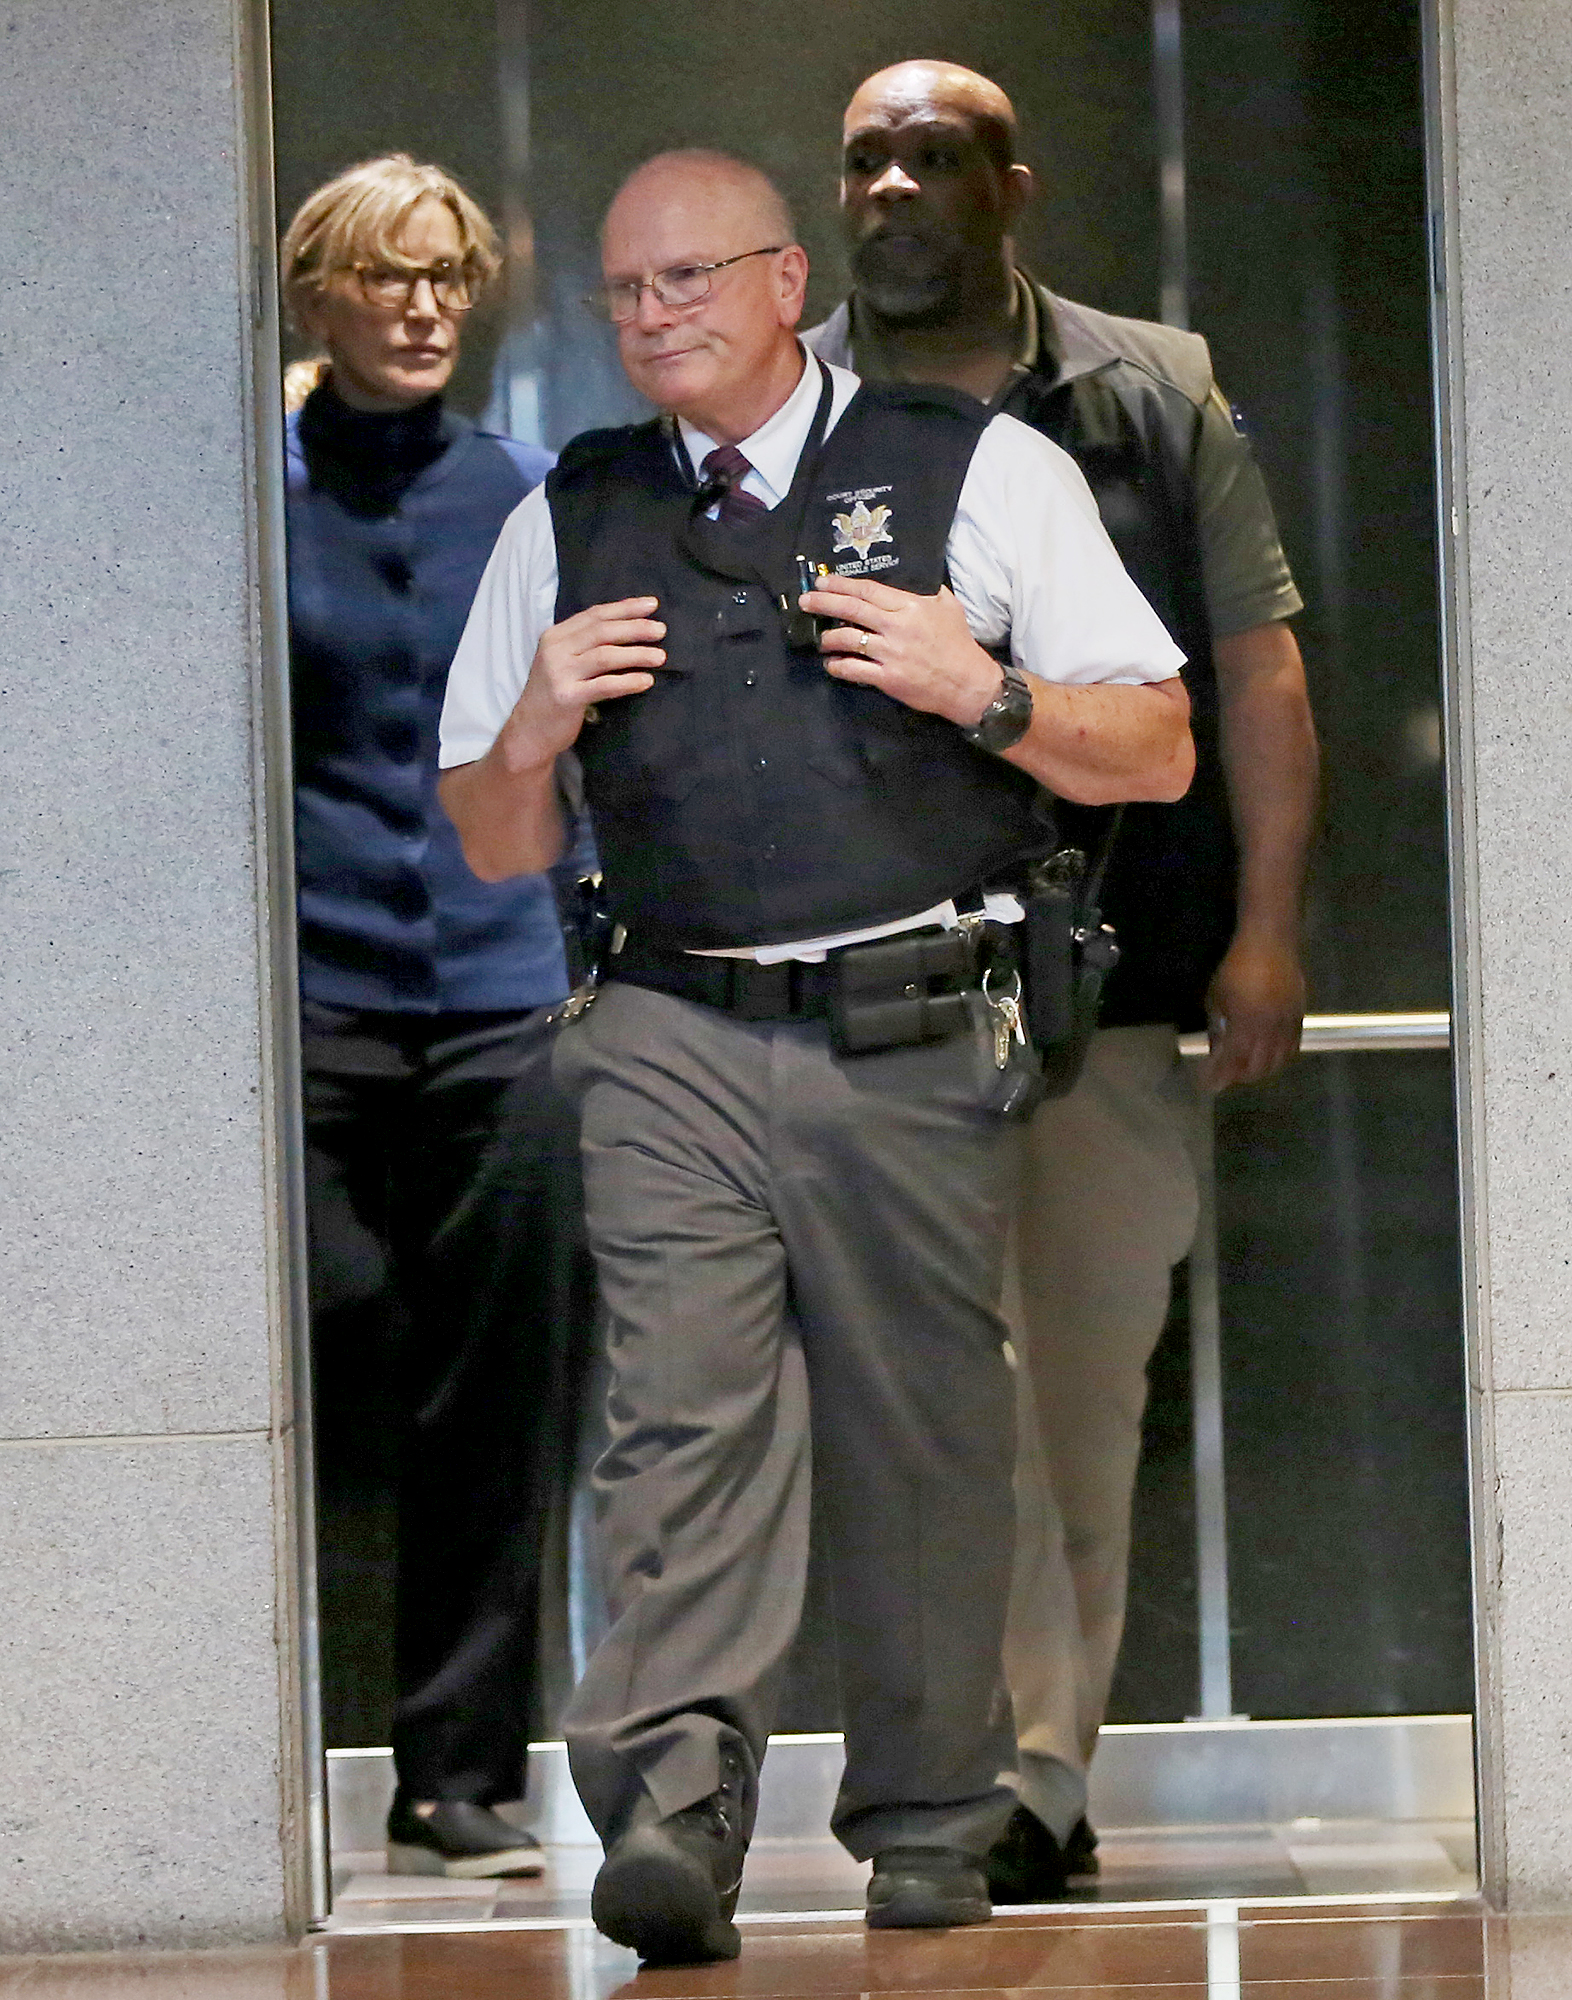 Felicity-Huffman-Seen-for-First-Time-Since-Arrest-in-College-Admissions-Scam